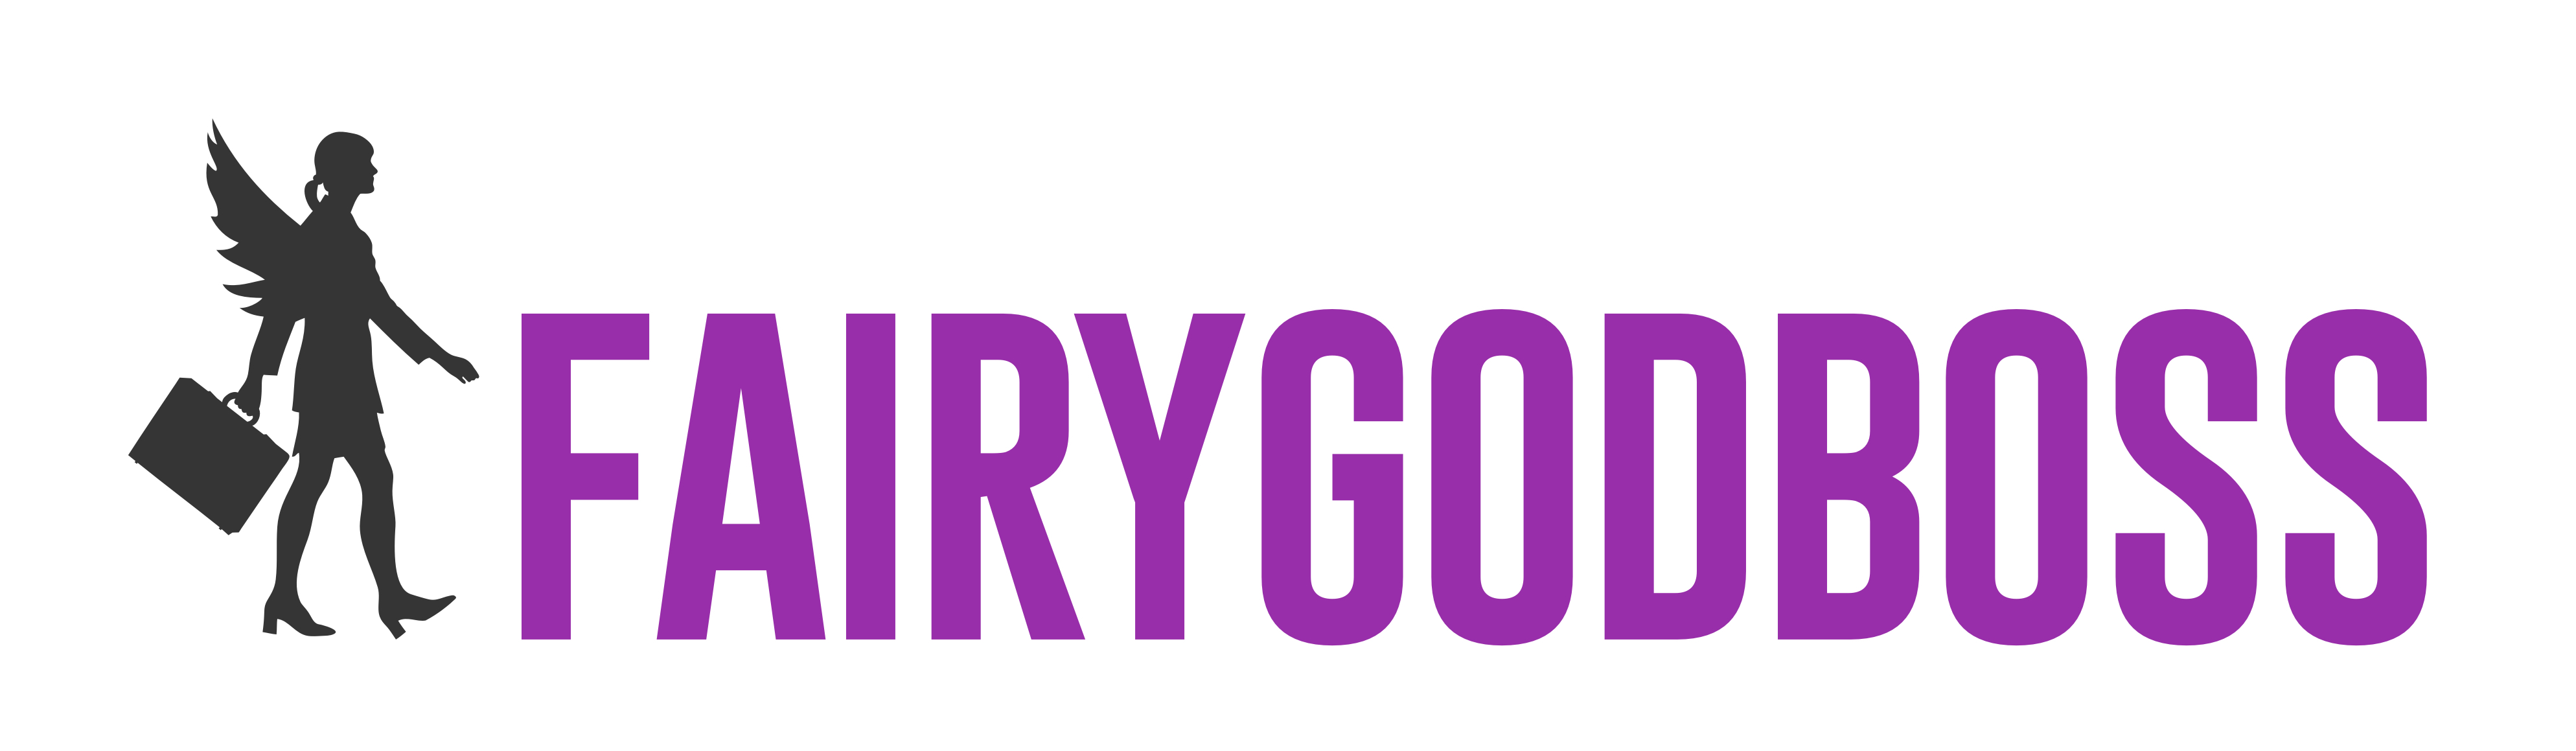 Fairygodboss Announces First Major Women's Conference - The Fairygodboss Inspiration Summit